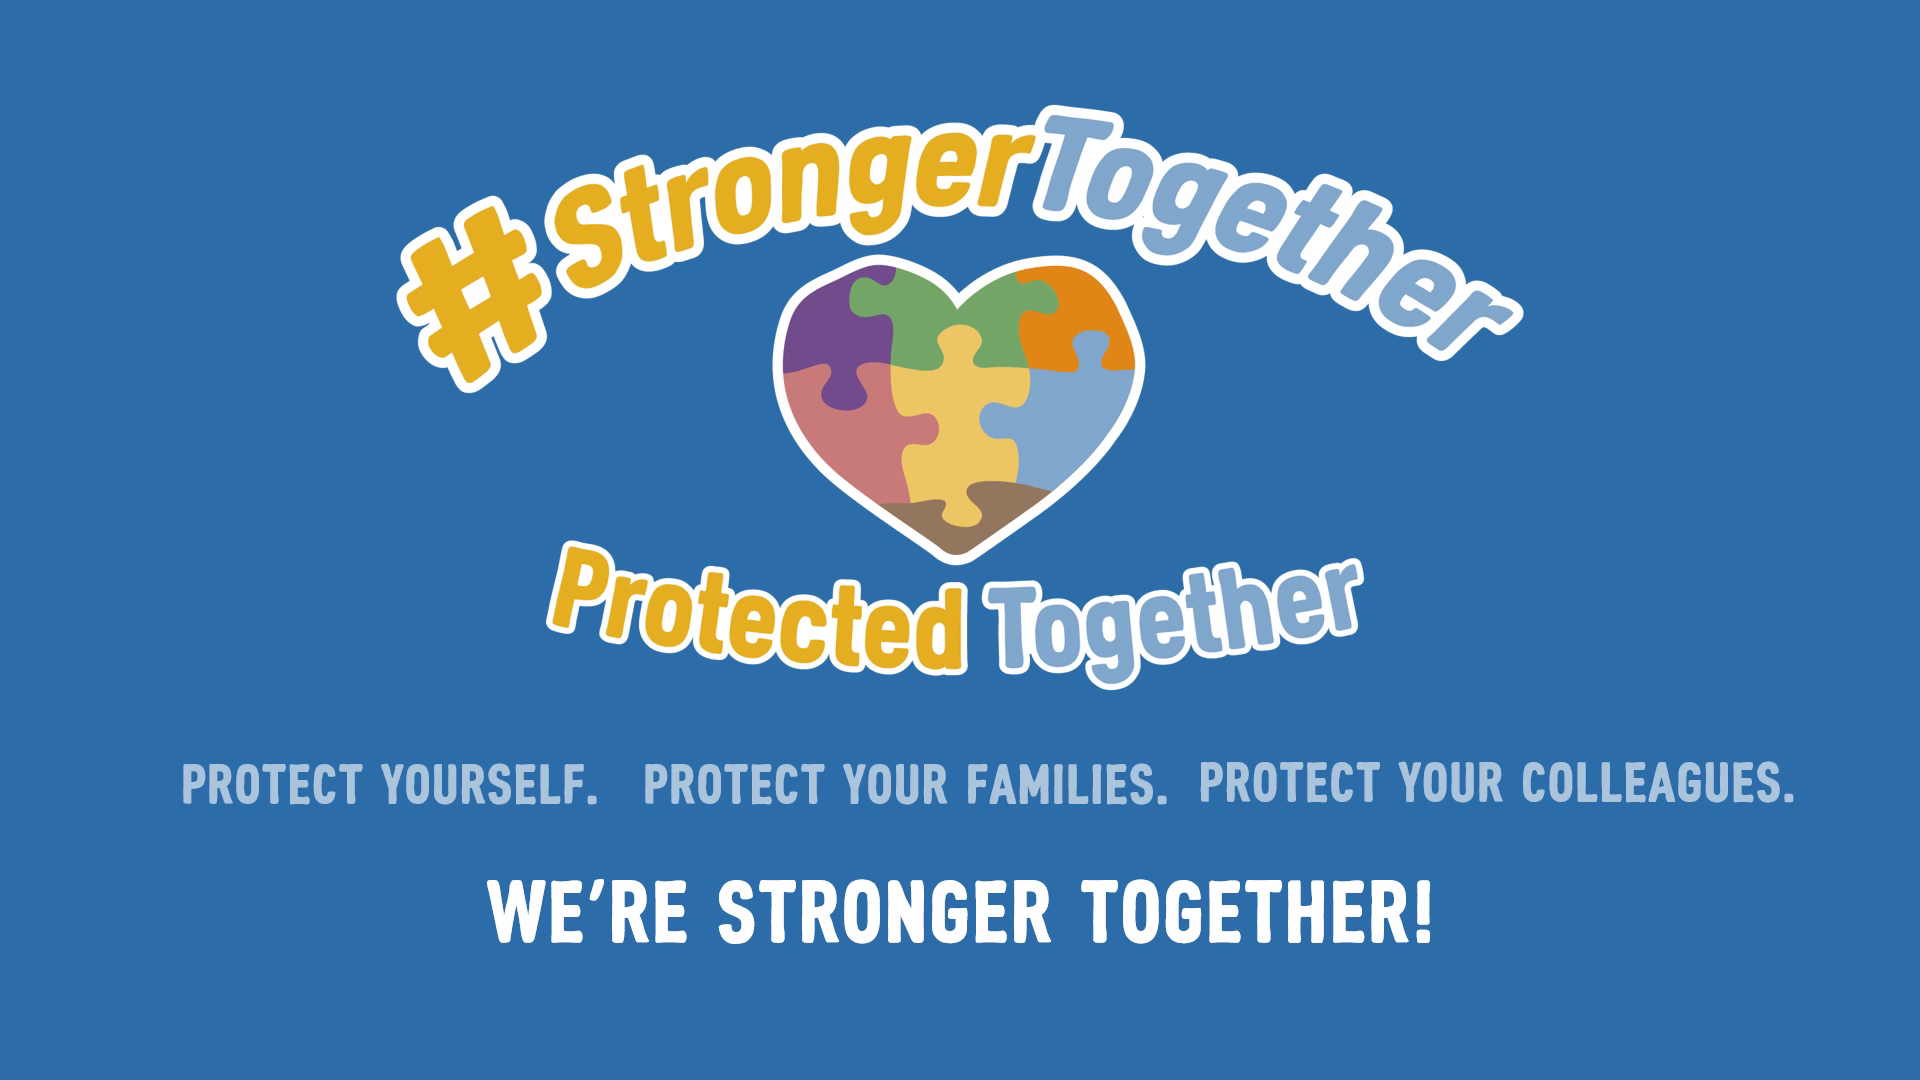 Stronger Together emblem